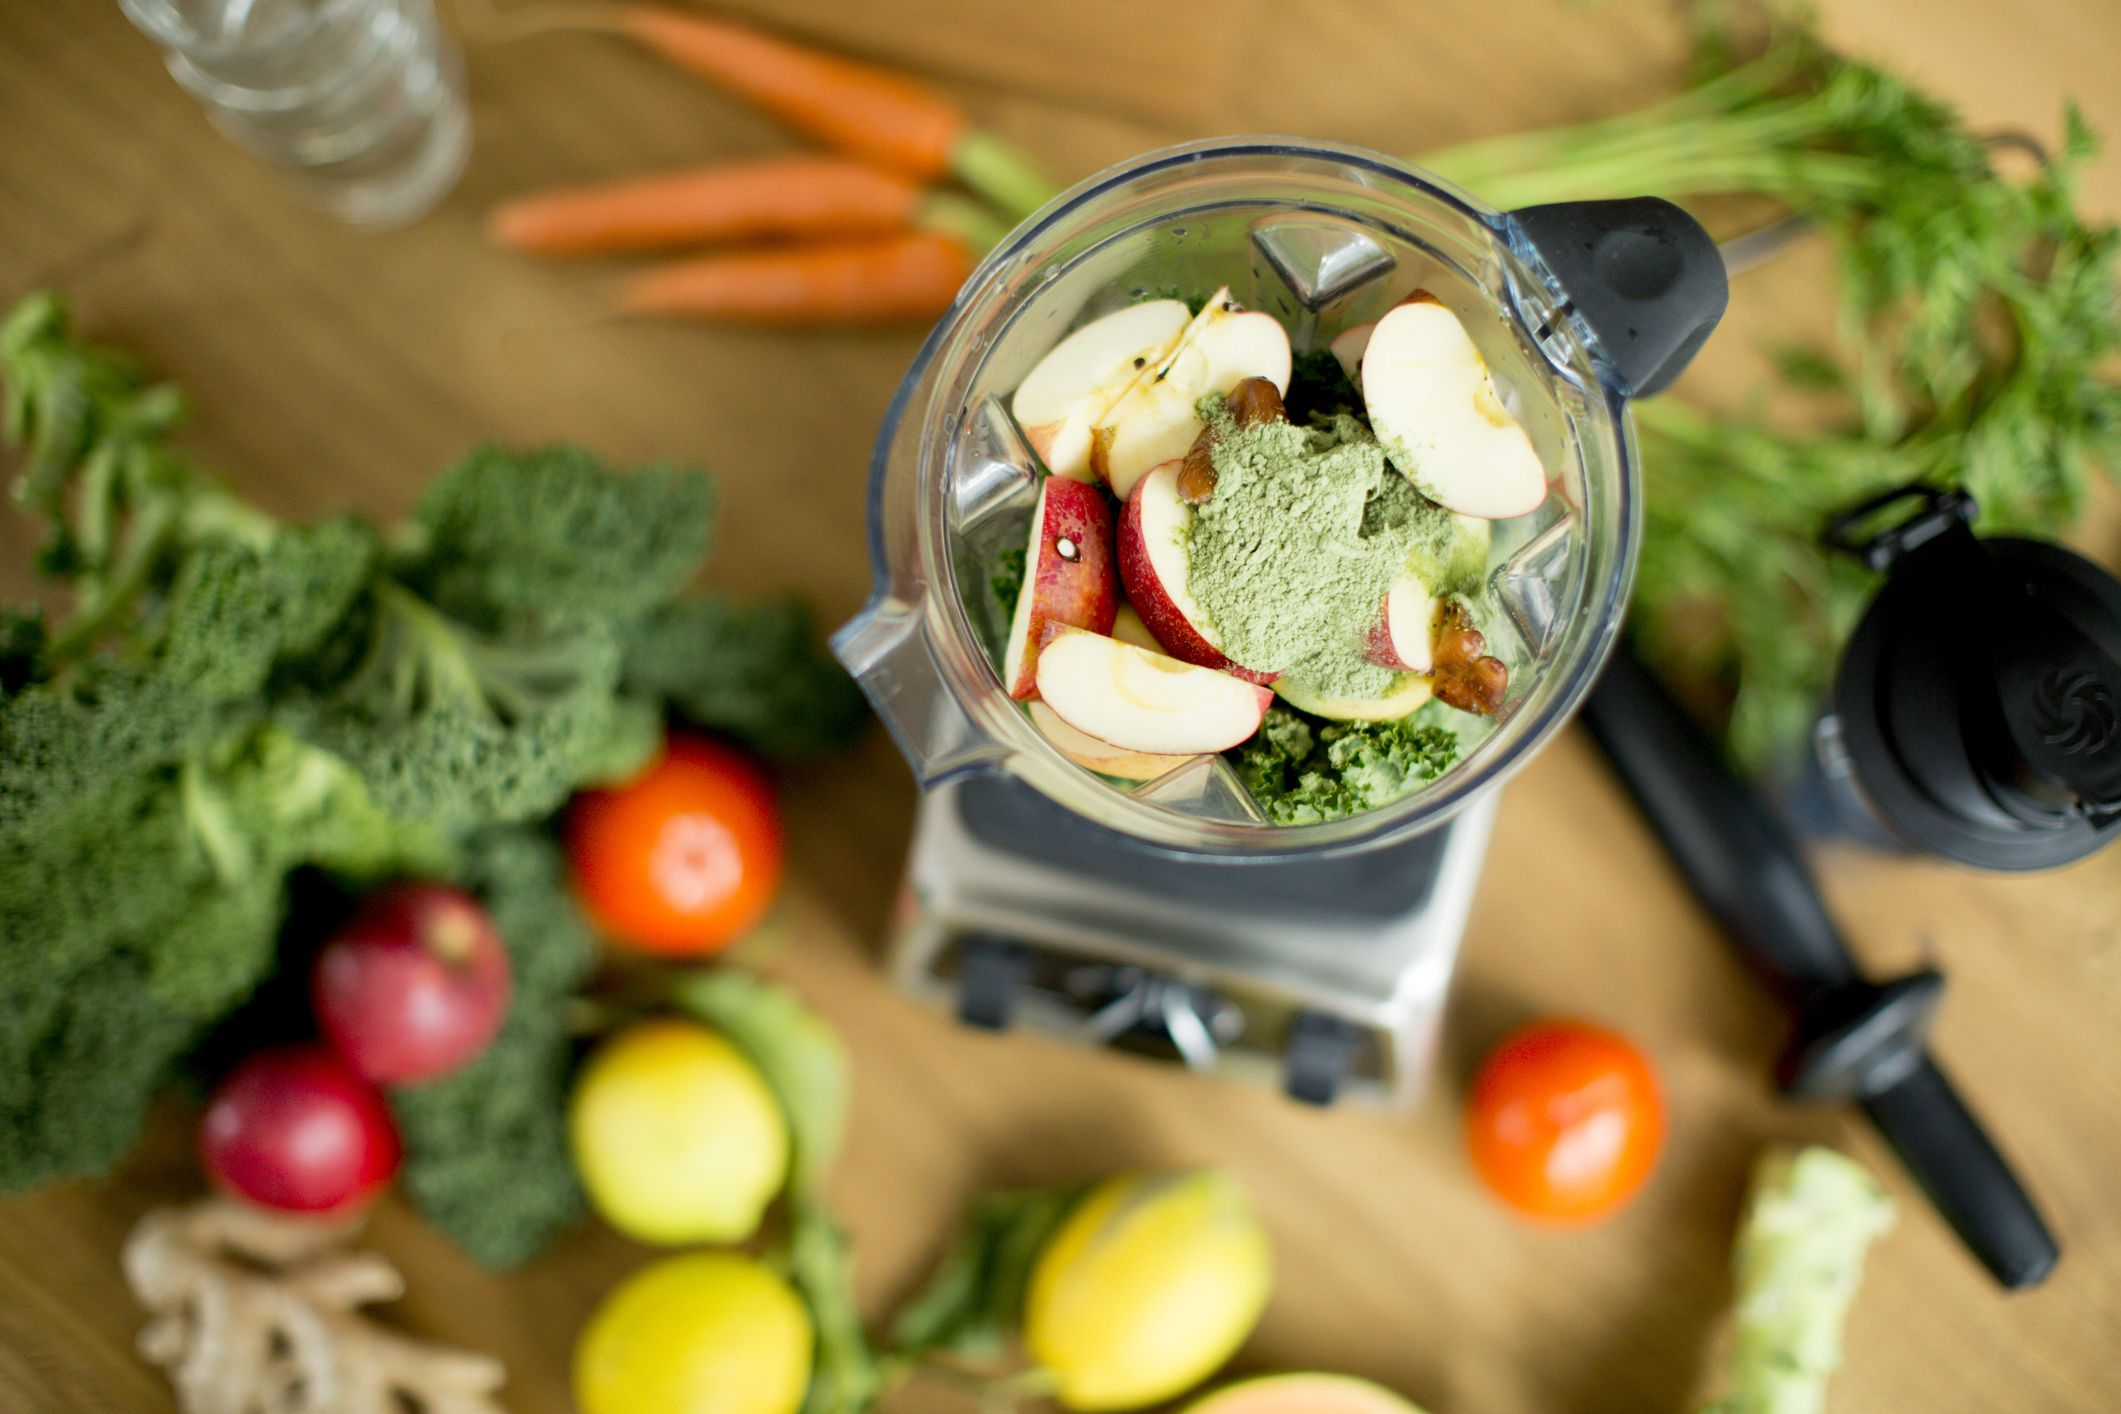 10 Healthy Ways to Use a Vitamix